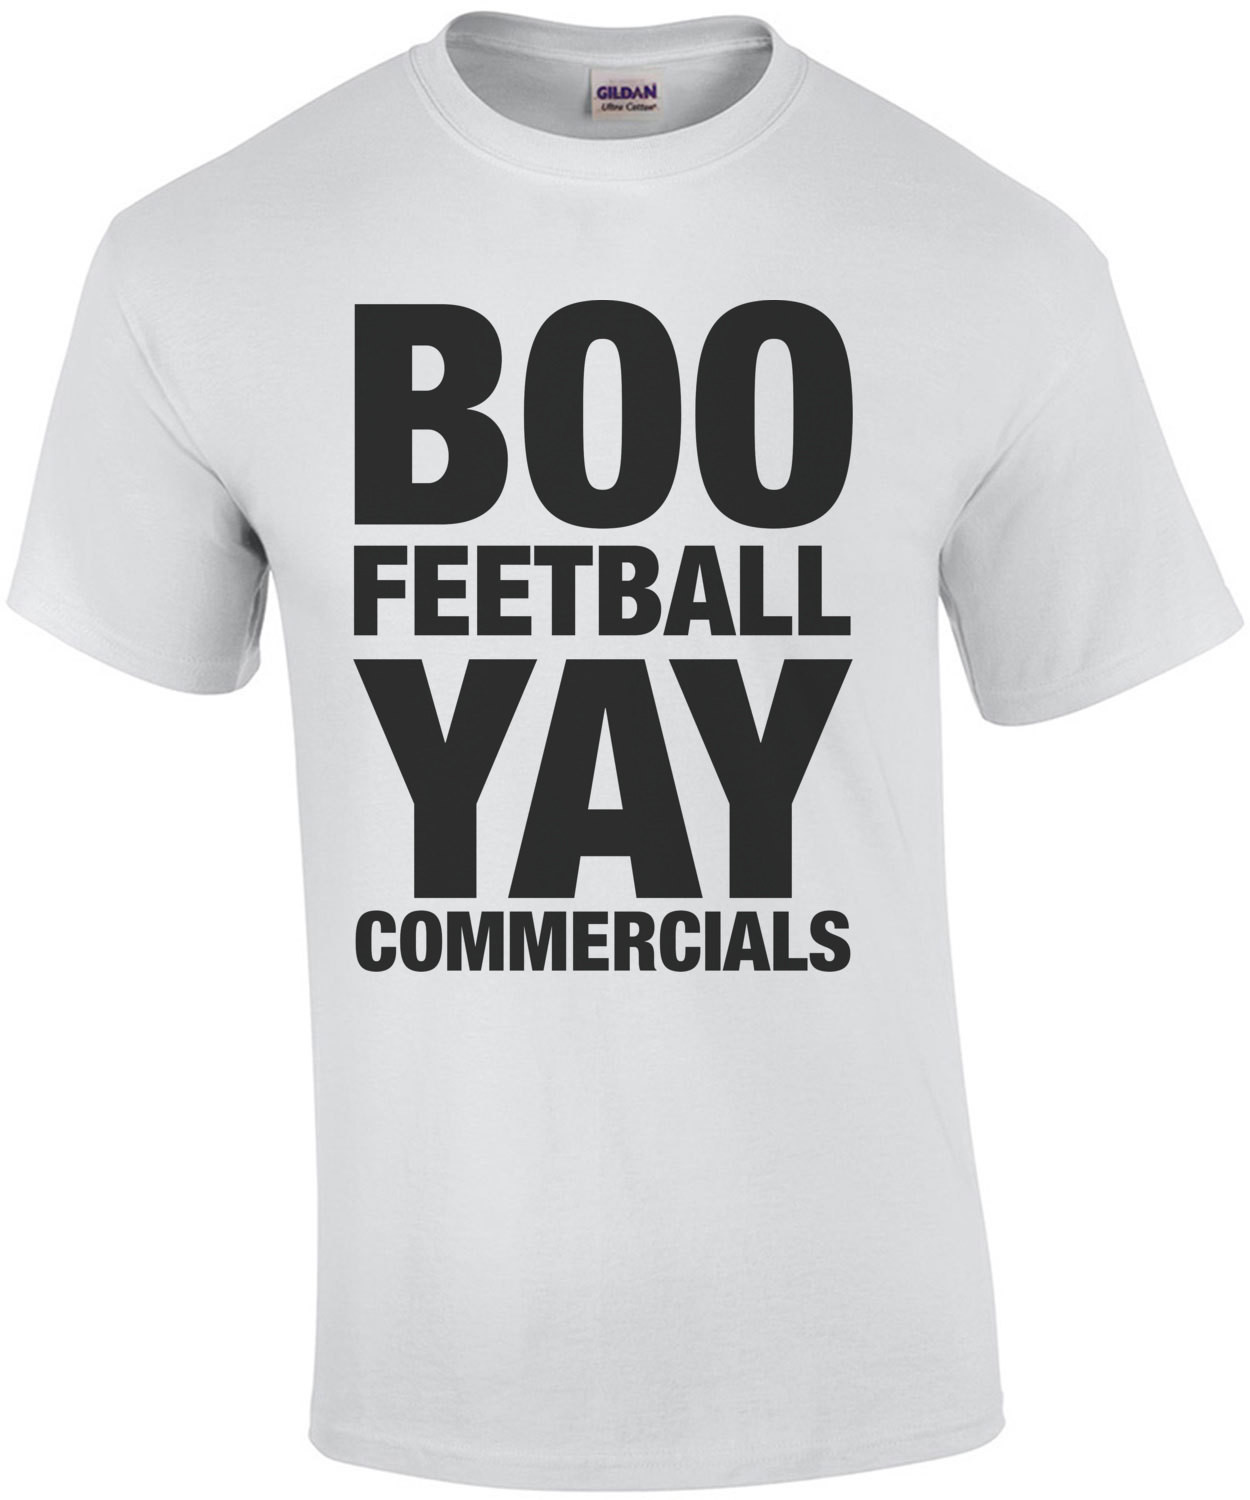 Boo Feetball Yay Commercials Funny Super Bowl Shirt